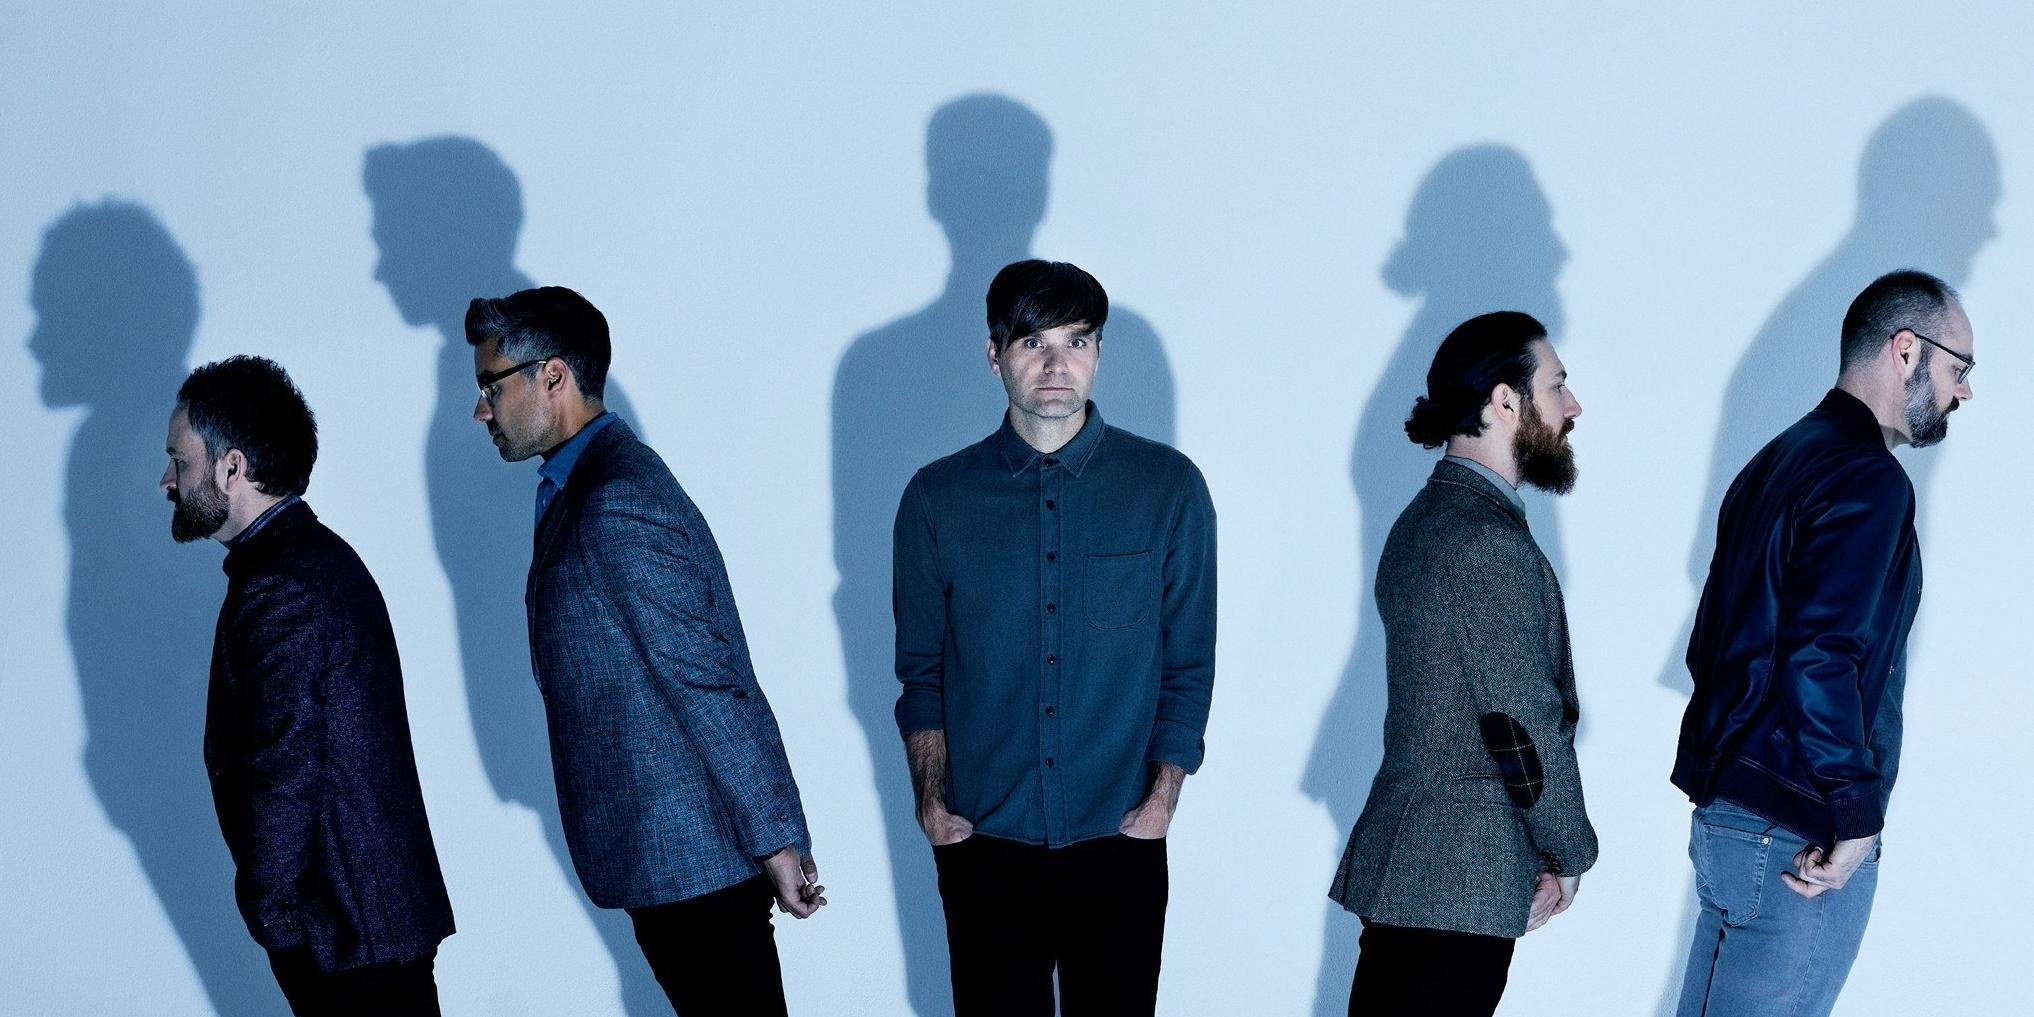 Death Cab For Cutie release new song 'Gold Rush' off upcoming album – listen